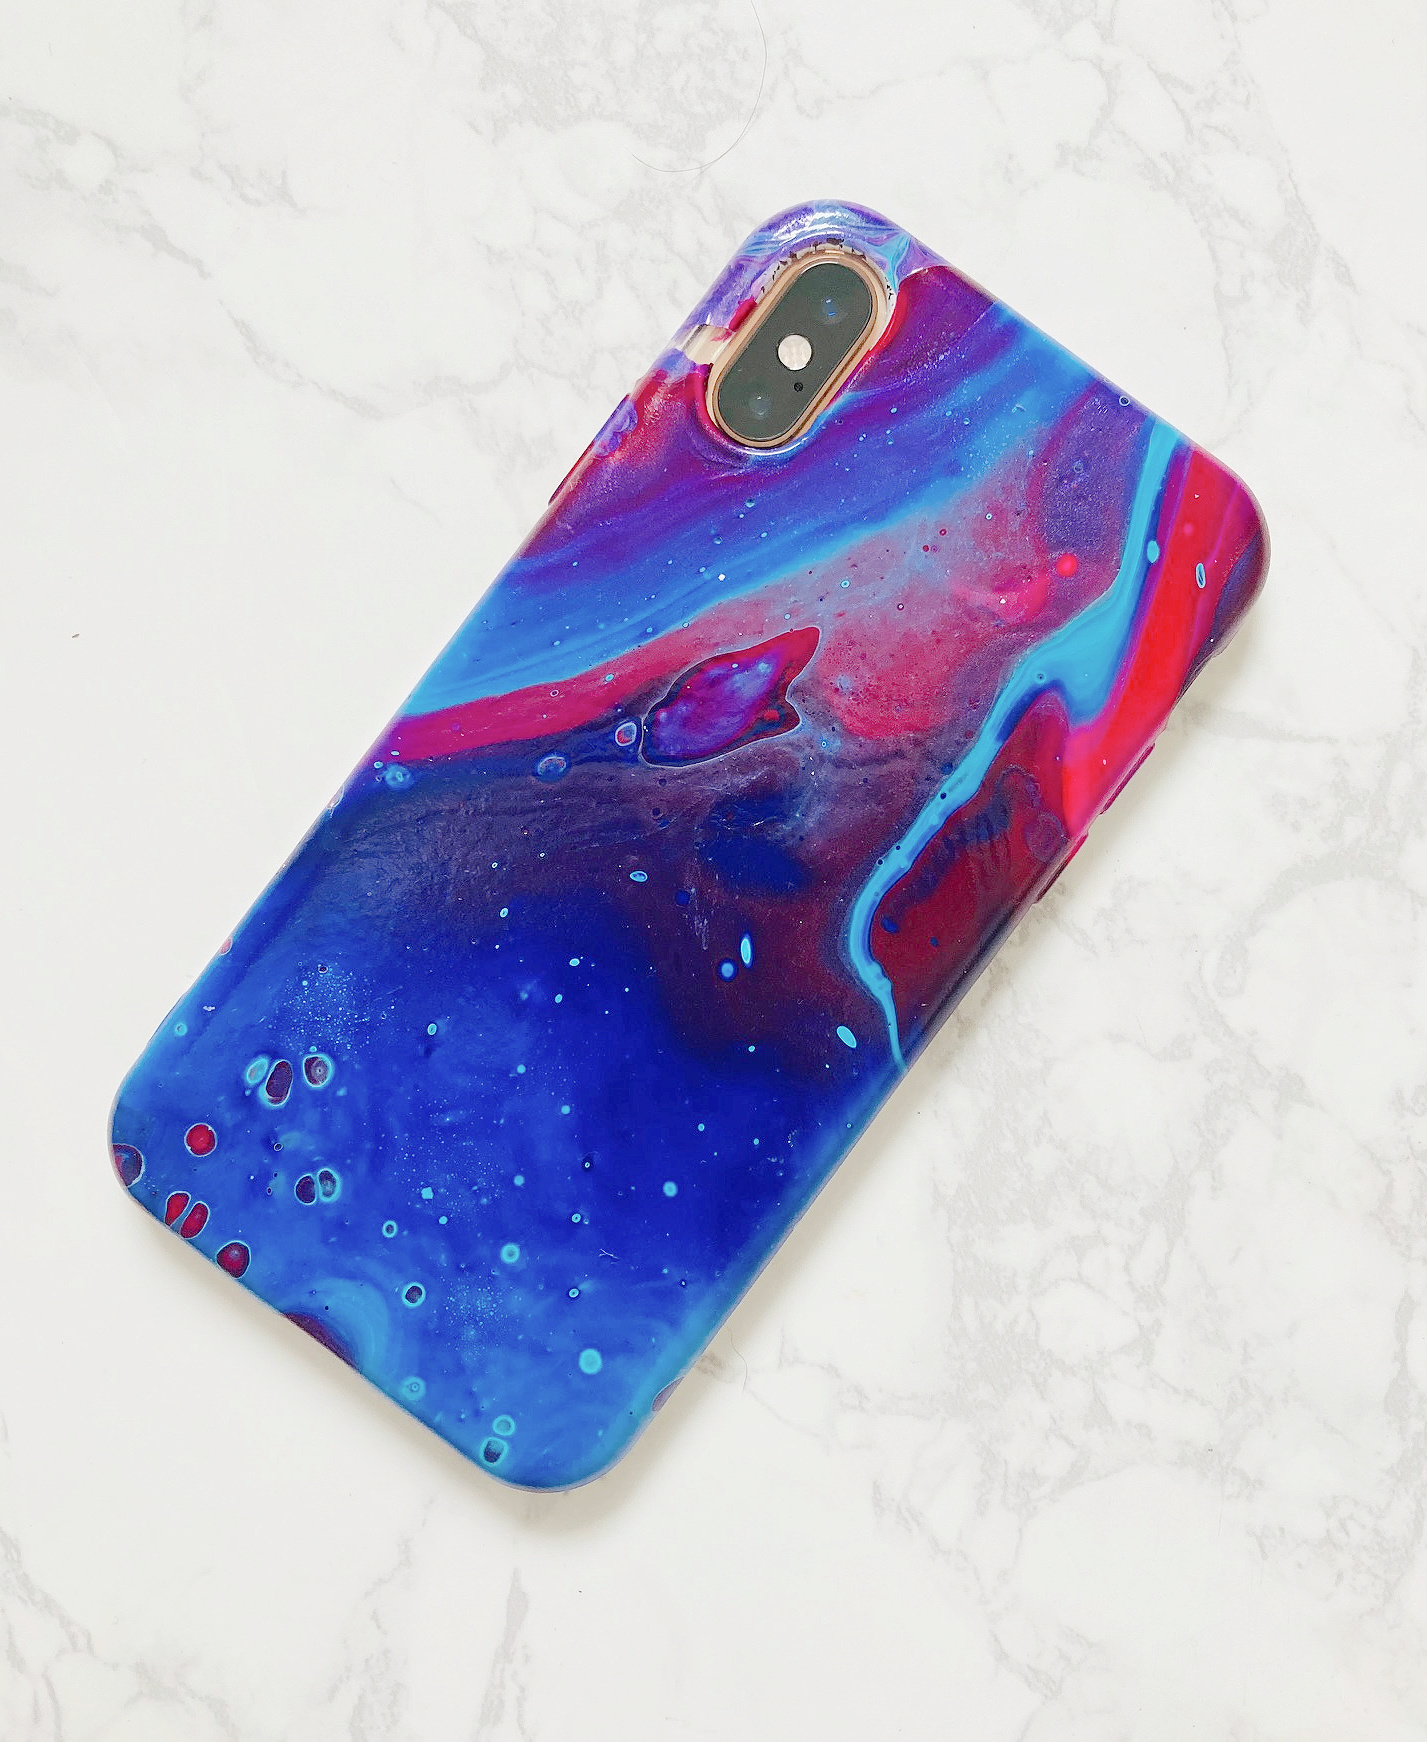 Clares Loves phone cases review, Legology Cellu-Lite Oil Review